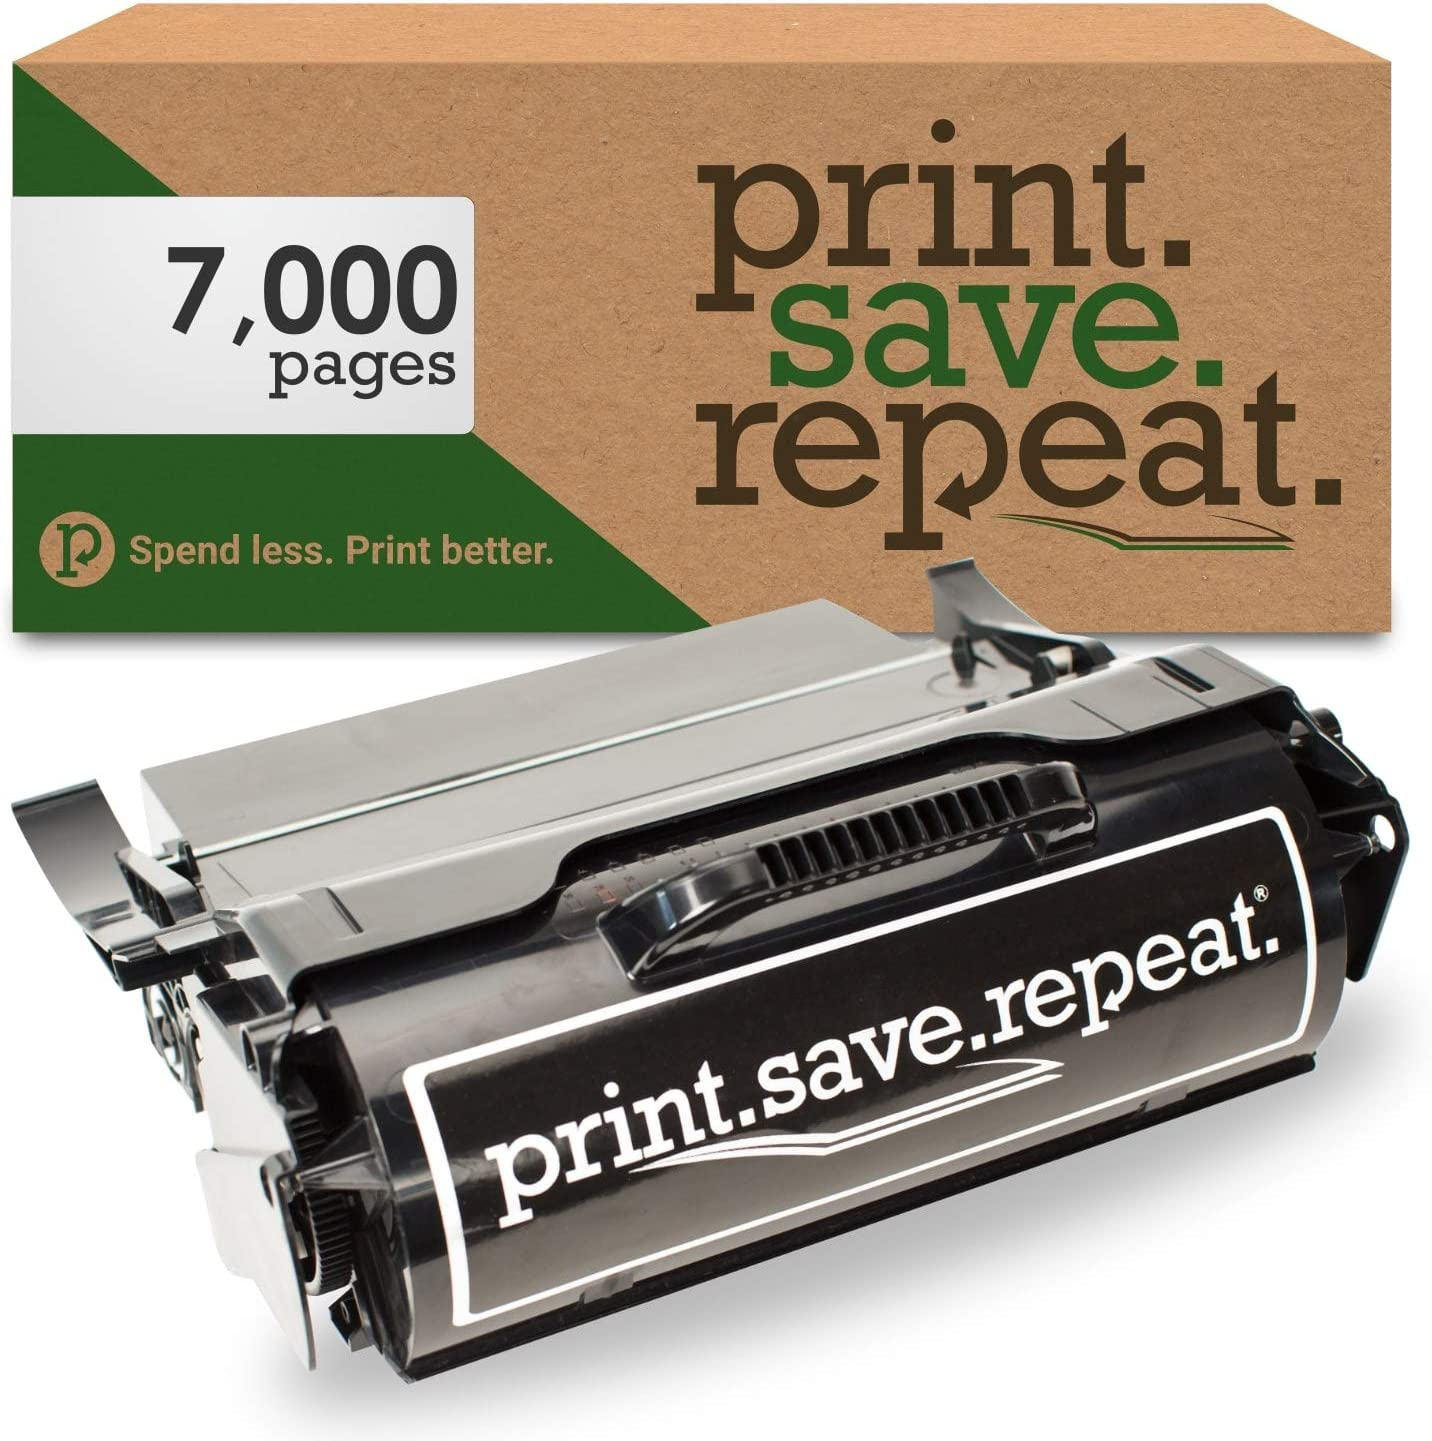 X652 7,000 Pages X654 X656 Lexmark X651A11A Remanufactured Toner Cartridge for X651 Print.Save.Repeat X658